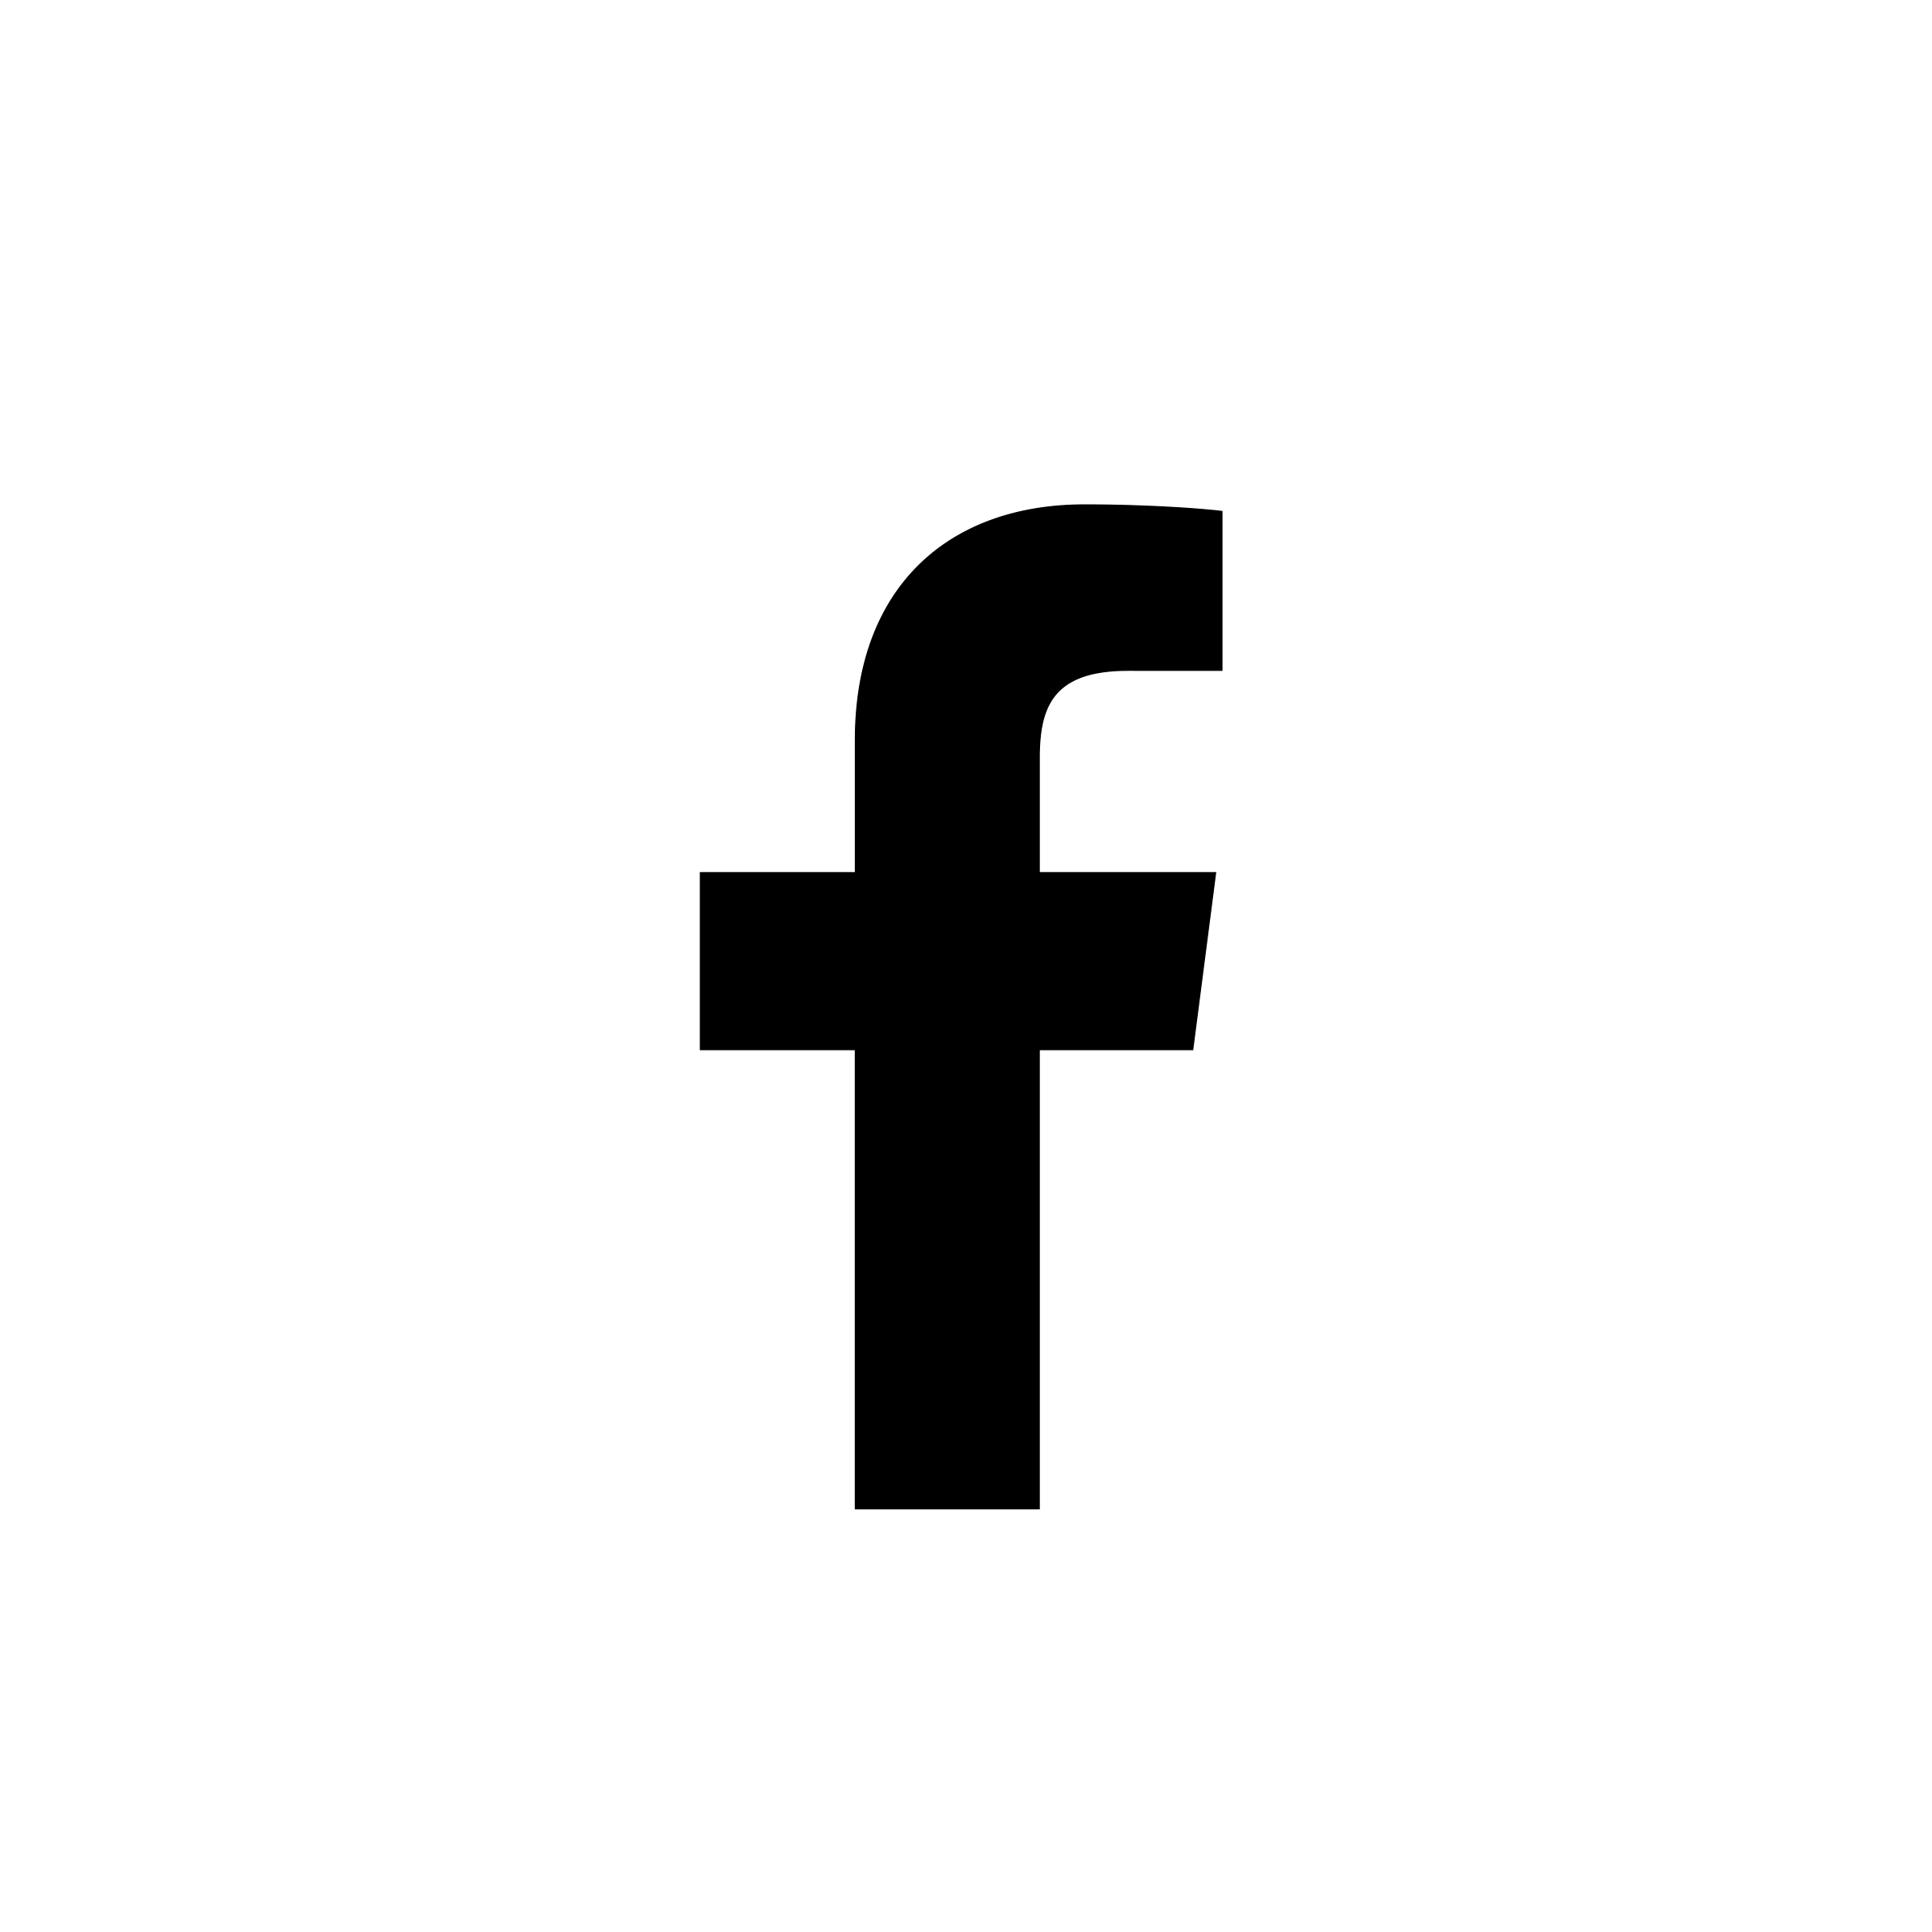 Facebook Logo PNG Transparent & SVG Vector - Freebie Supply